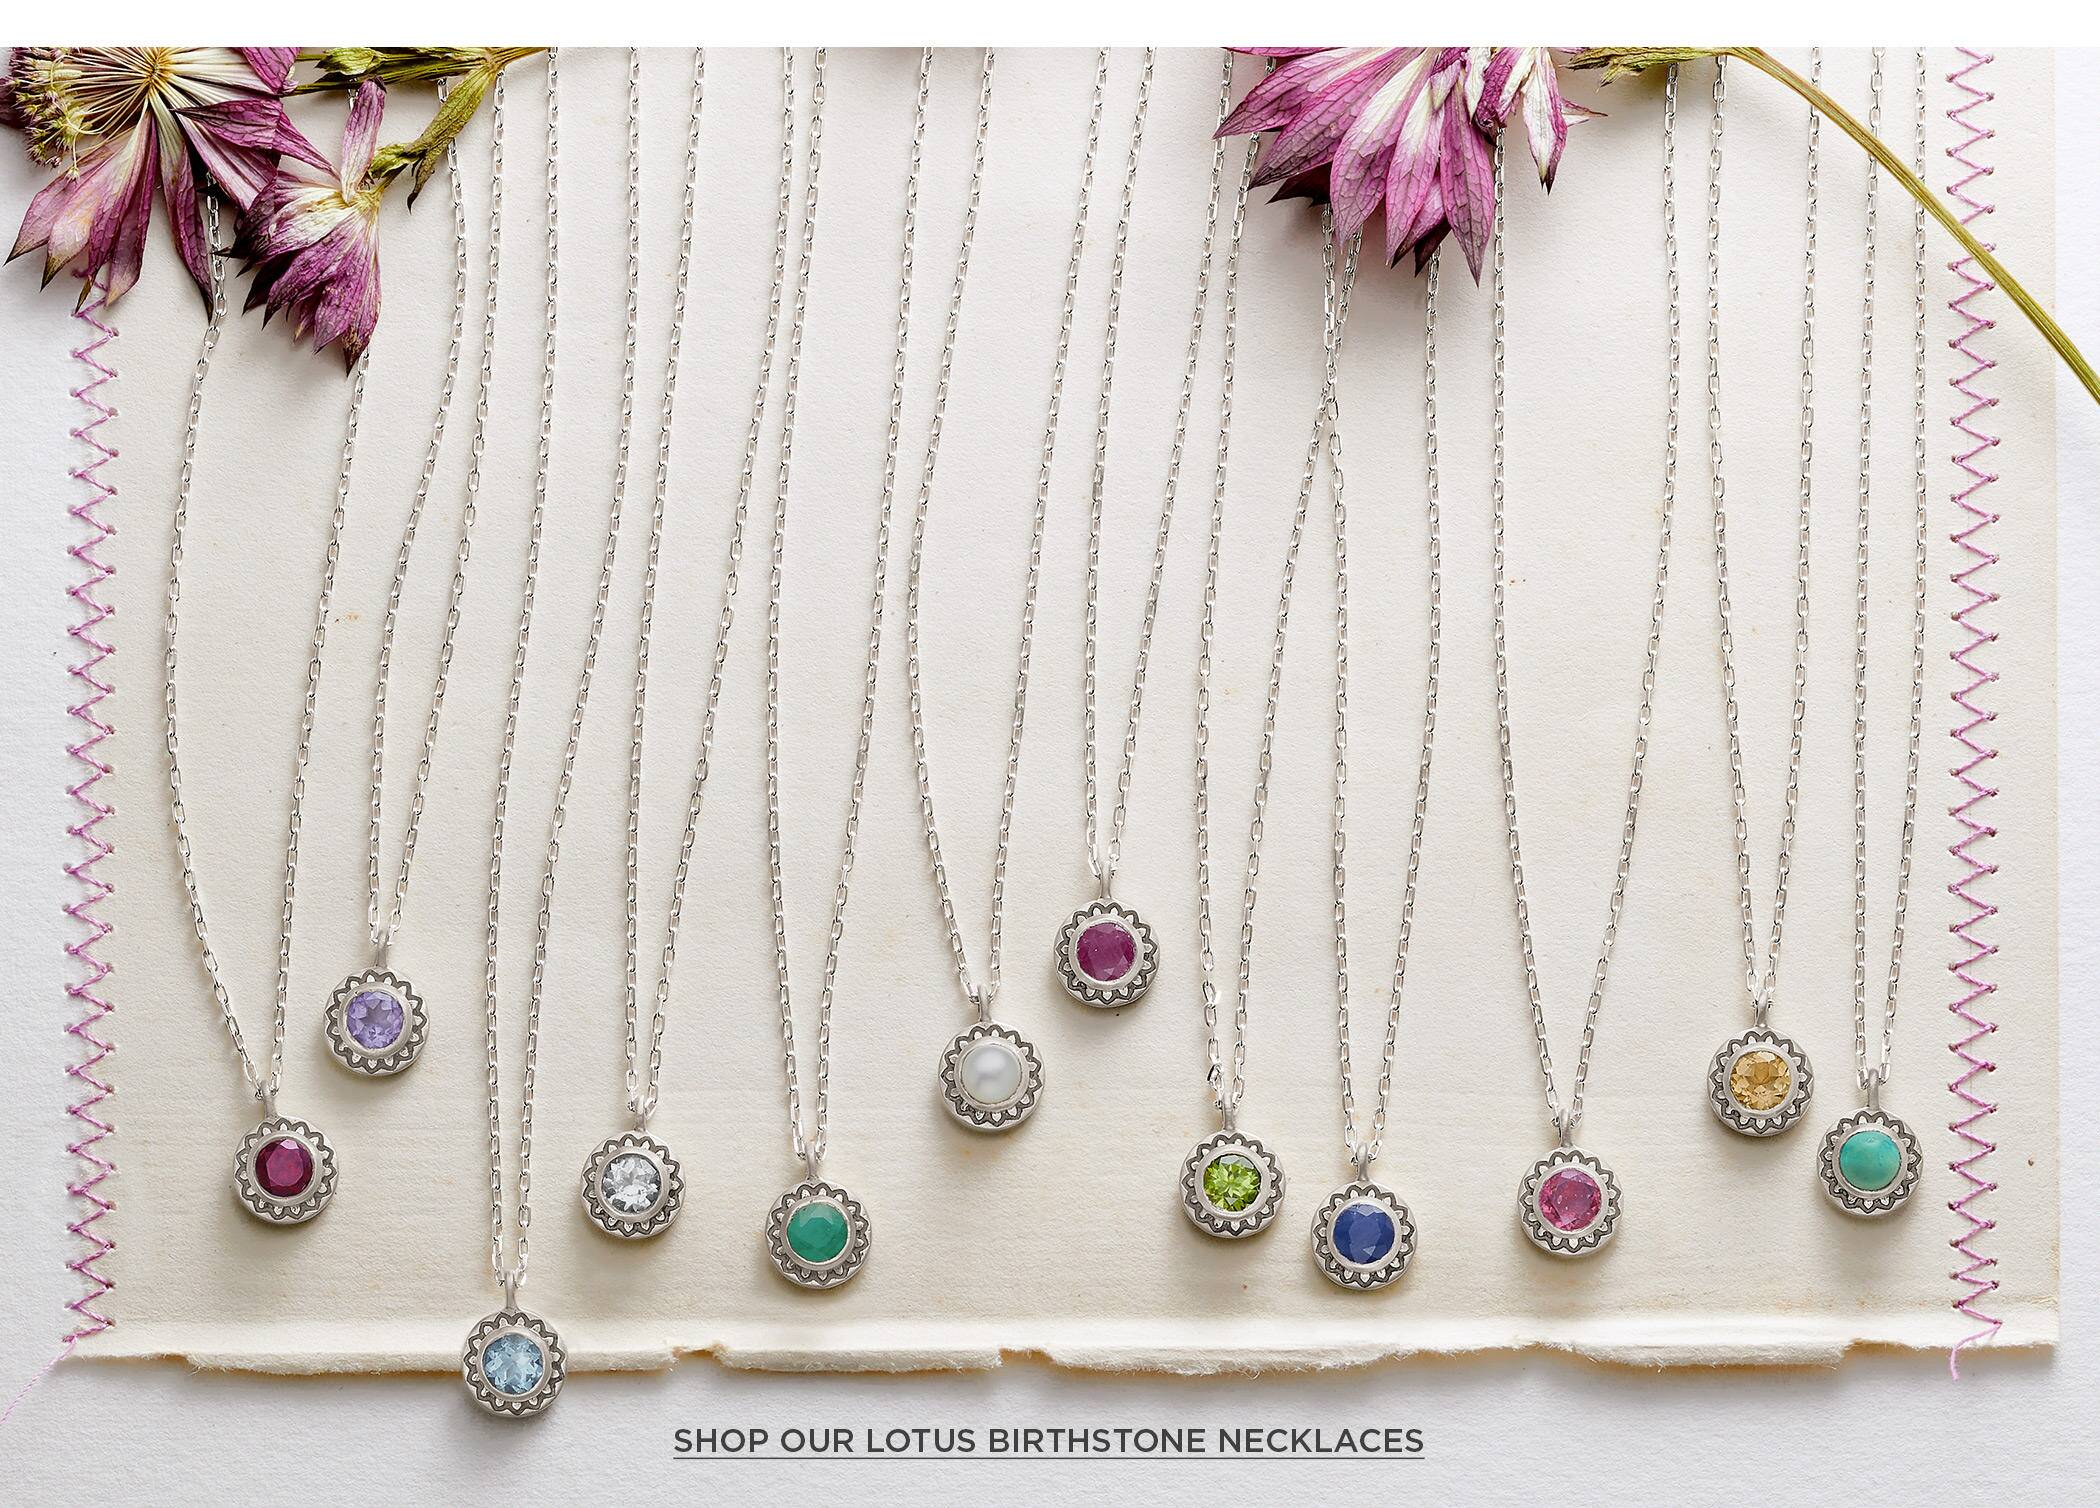 Lotus Birthstone Necklaces